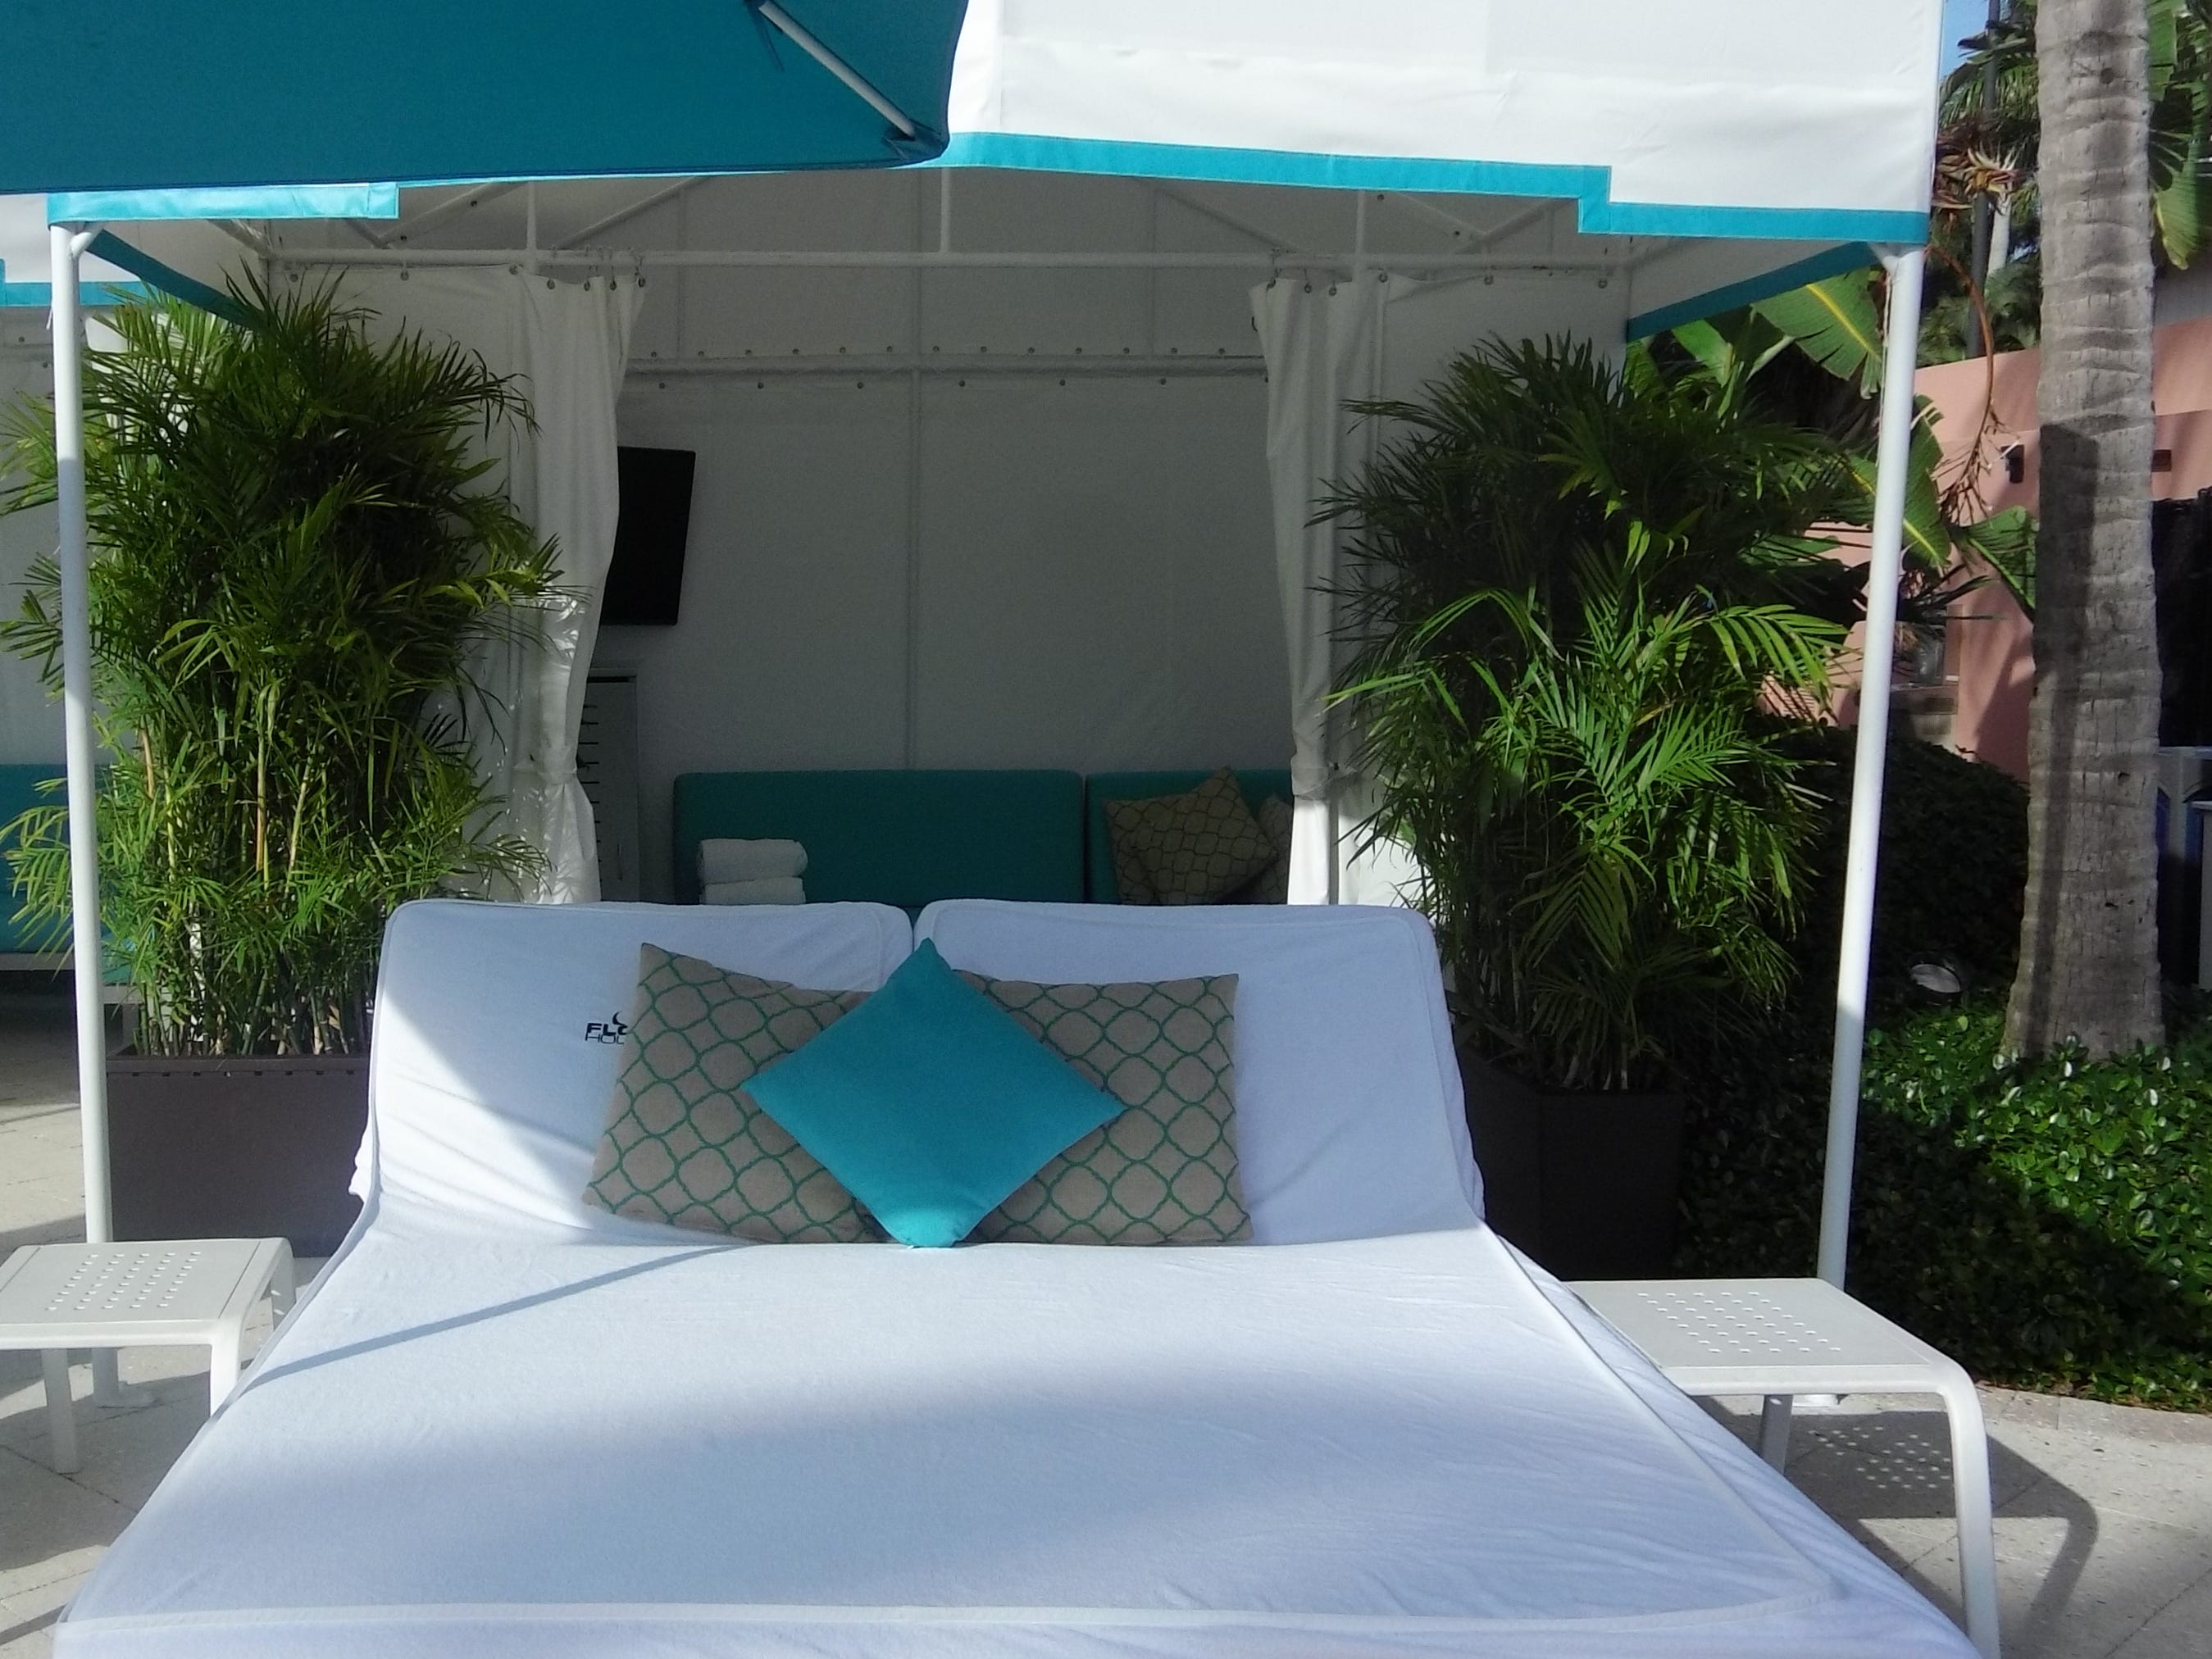 Poolside cabanas are available at The Tower pool.